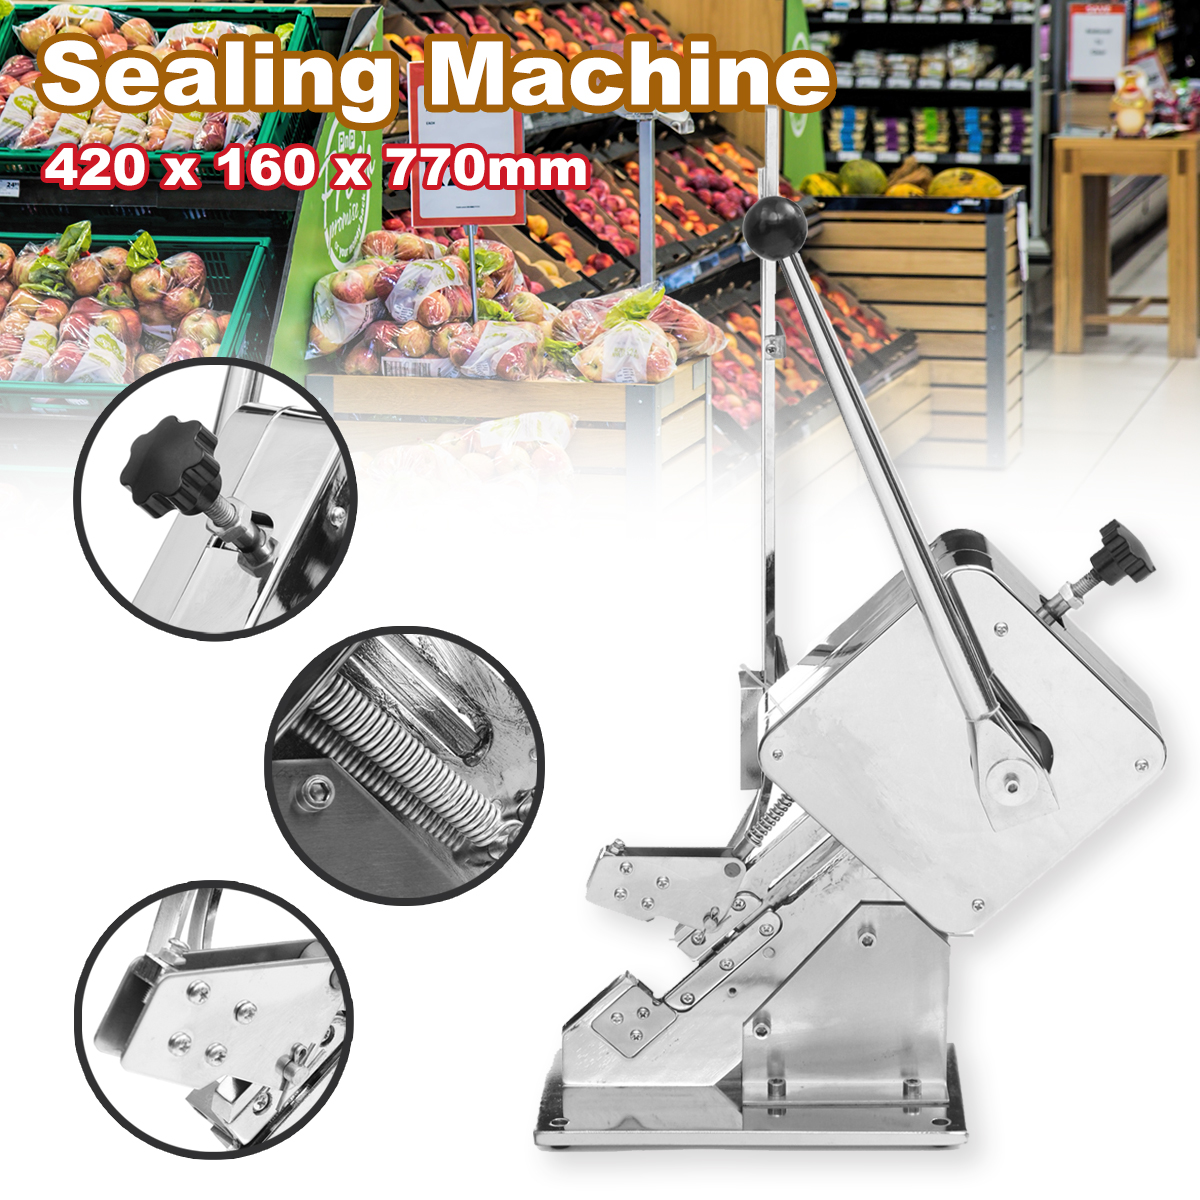 Food Sealers Packing Sealing Machine Manual Ham Sausage Knotting Sealing Machine Supermarket + U-shape ClipsFood Sealers Packing Sealing Machine Manual Ham Sausage Knotting Sealing Machine Supermarket + U-shape Clips